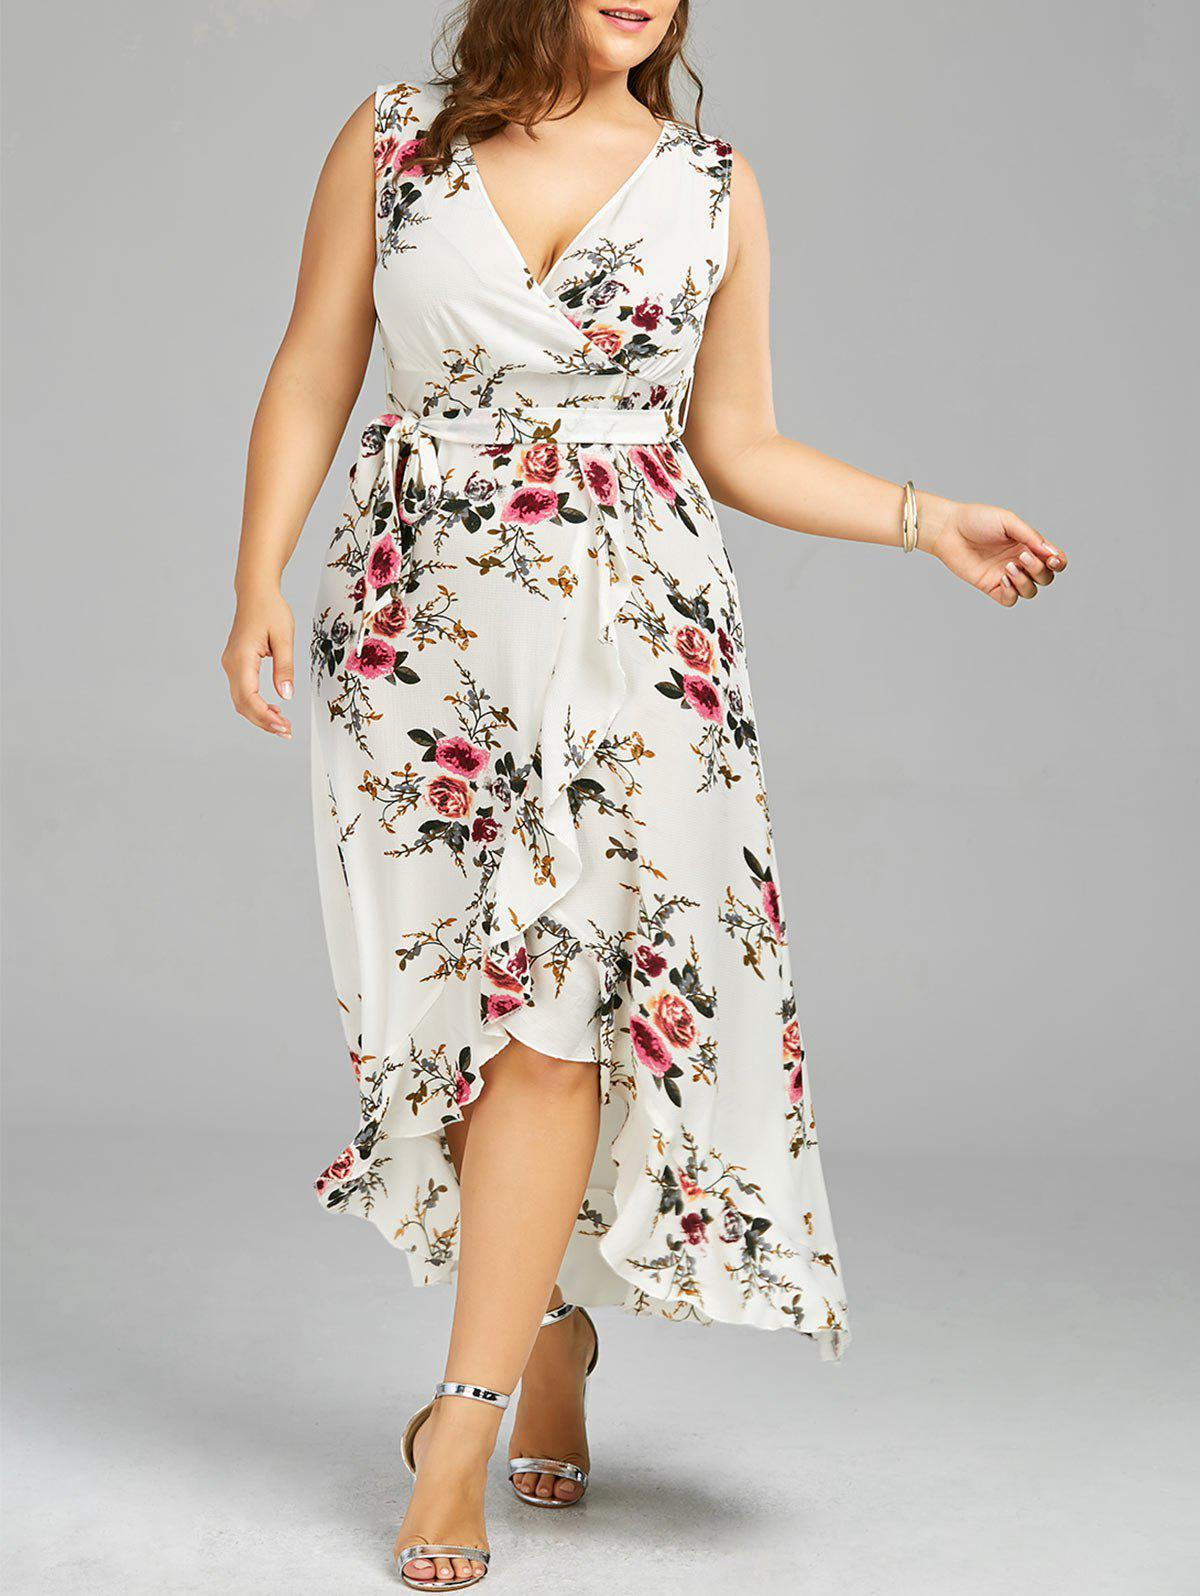 2018 Plus Size Tiny Floral Overlap Flounced Flowy Beach Dress White